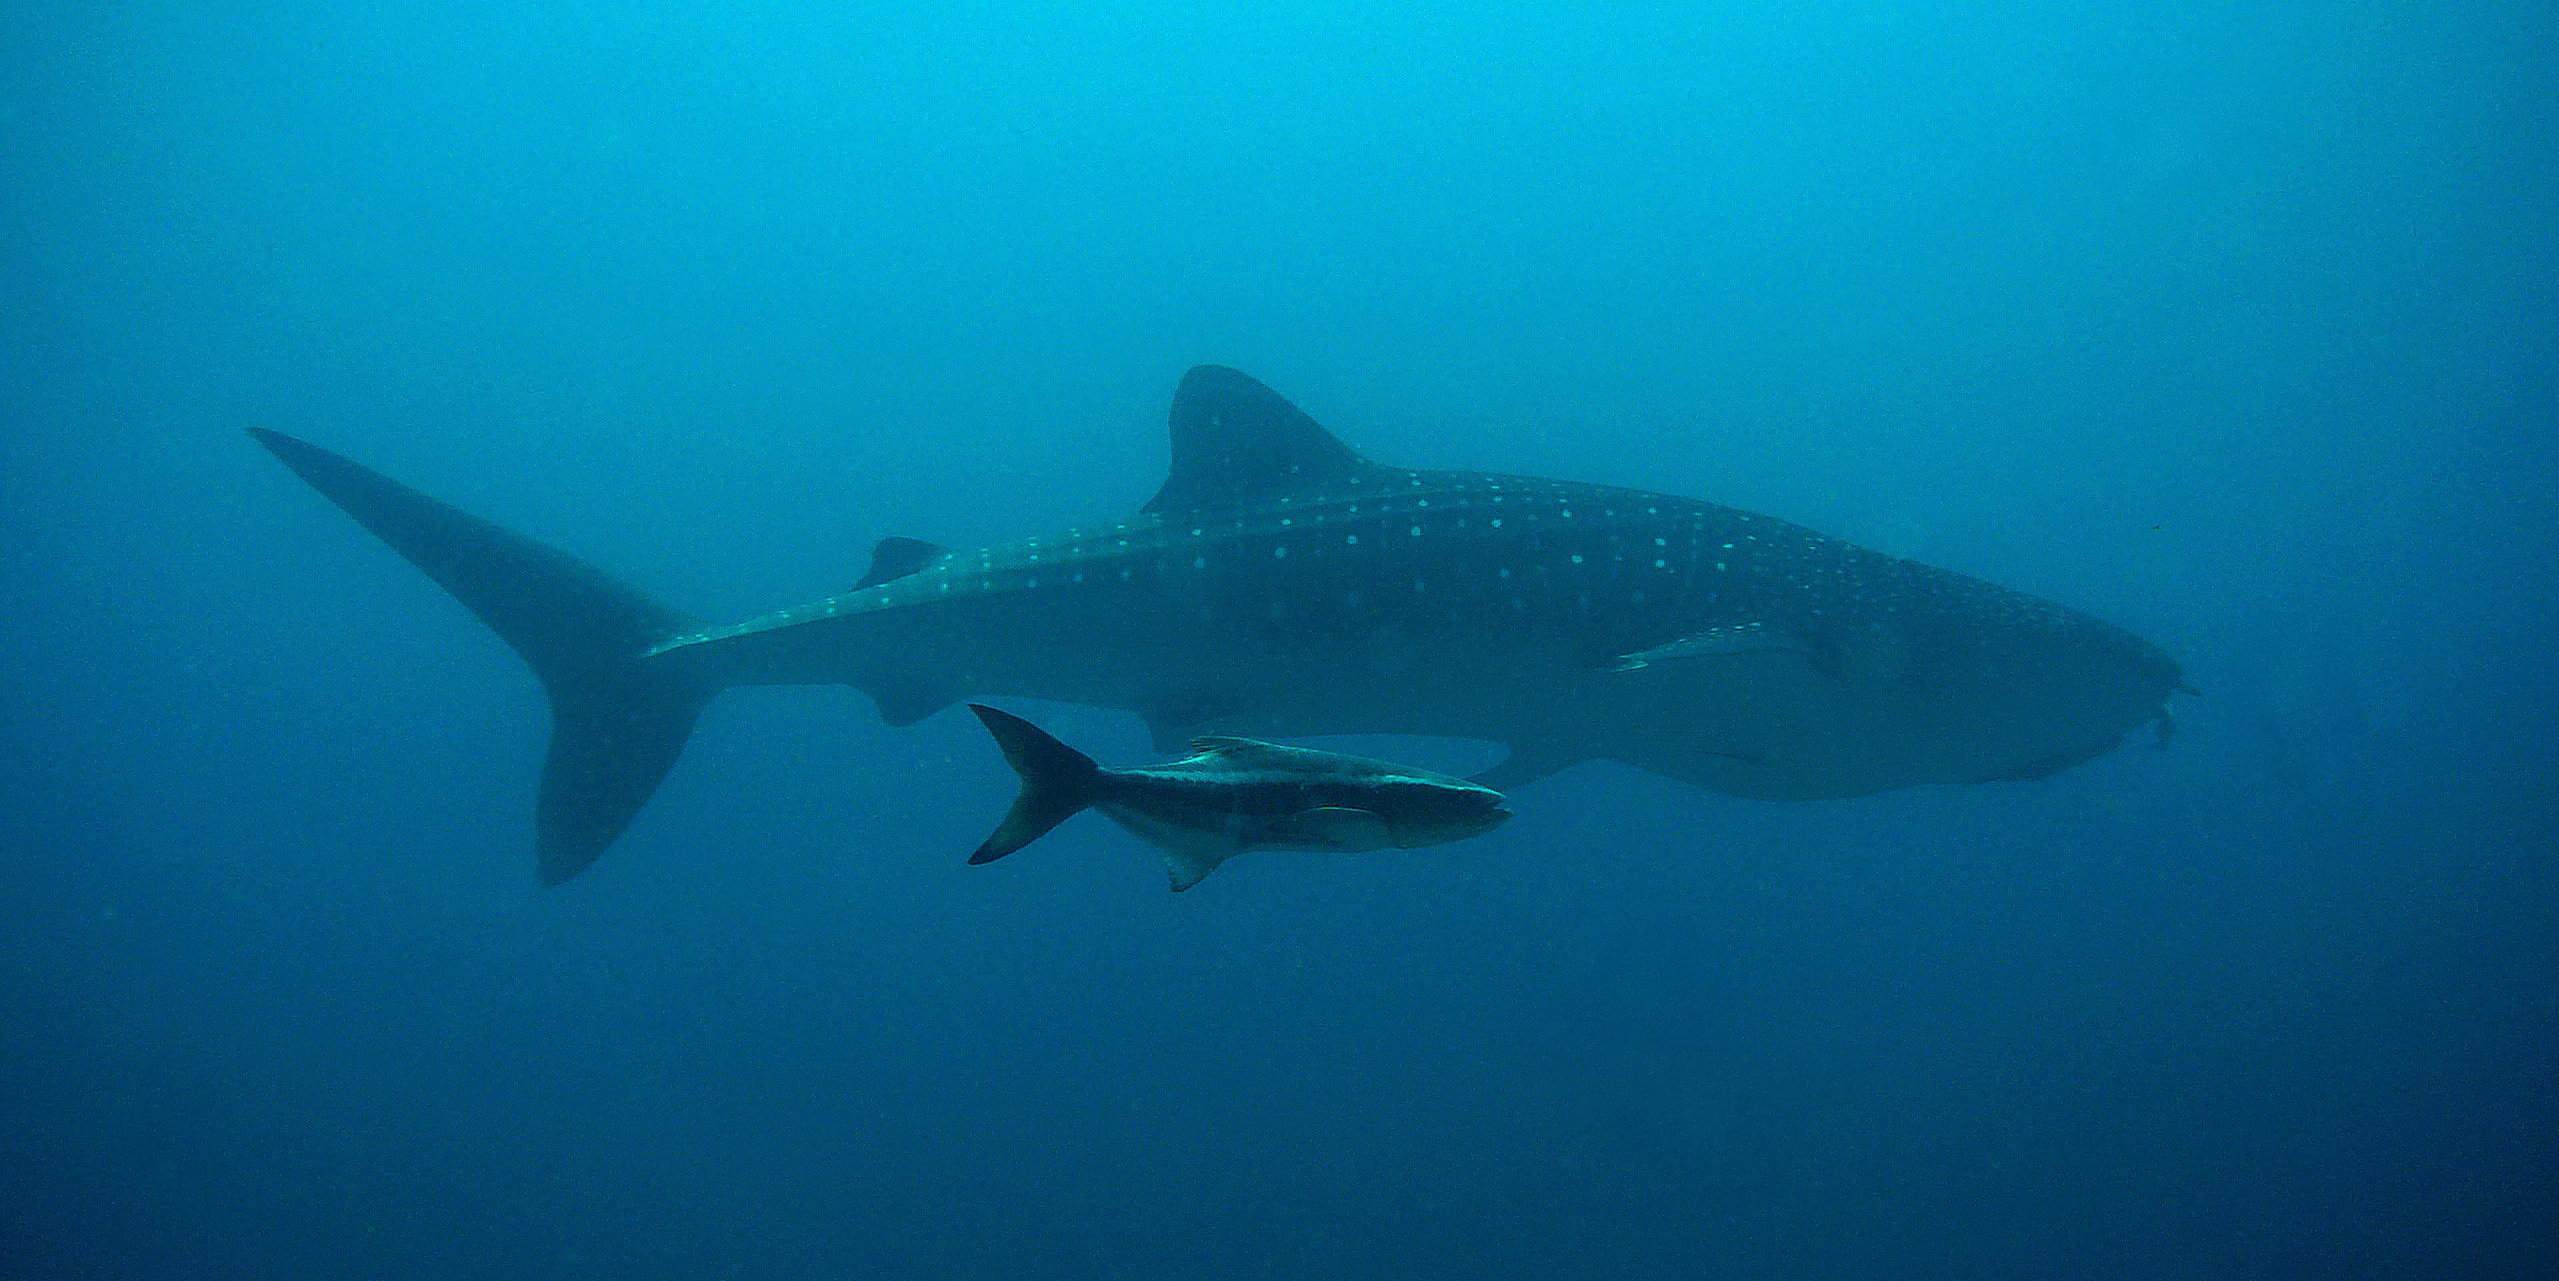 Swim with whale sharks in the Mesoamerican Barrier Reef System